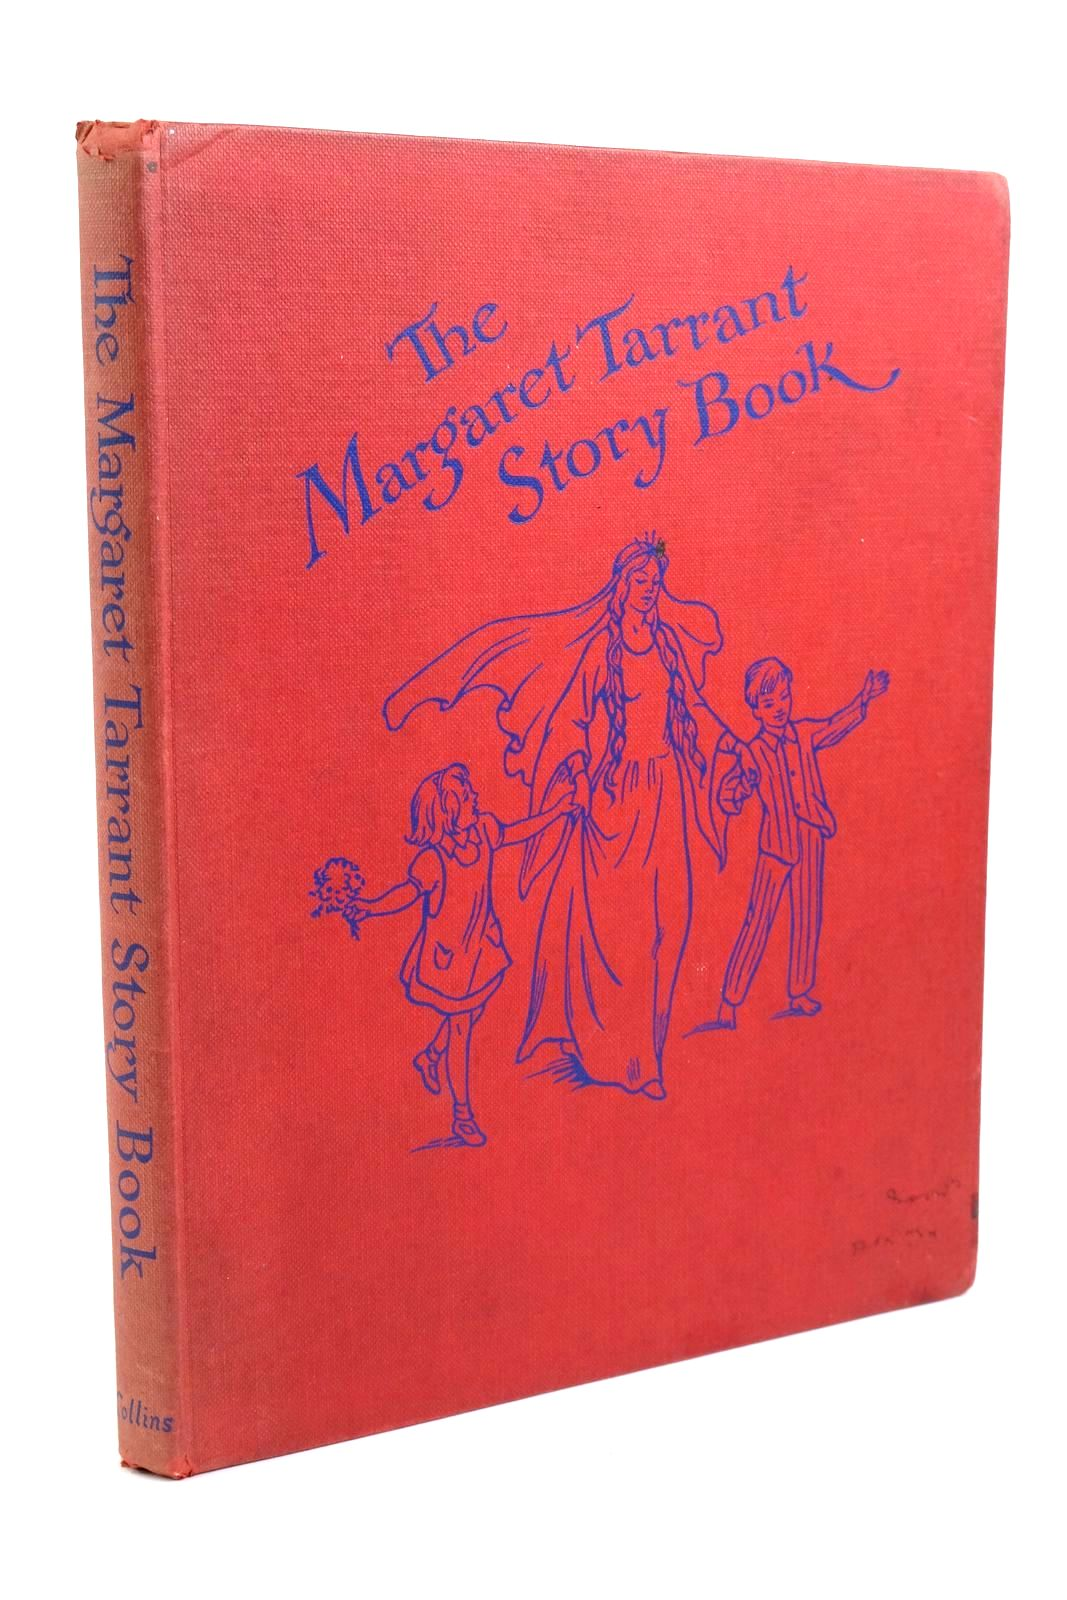 Photo of THE MARGARET TARRANT STORY BOOK- Stock Number: 1321736